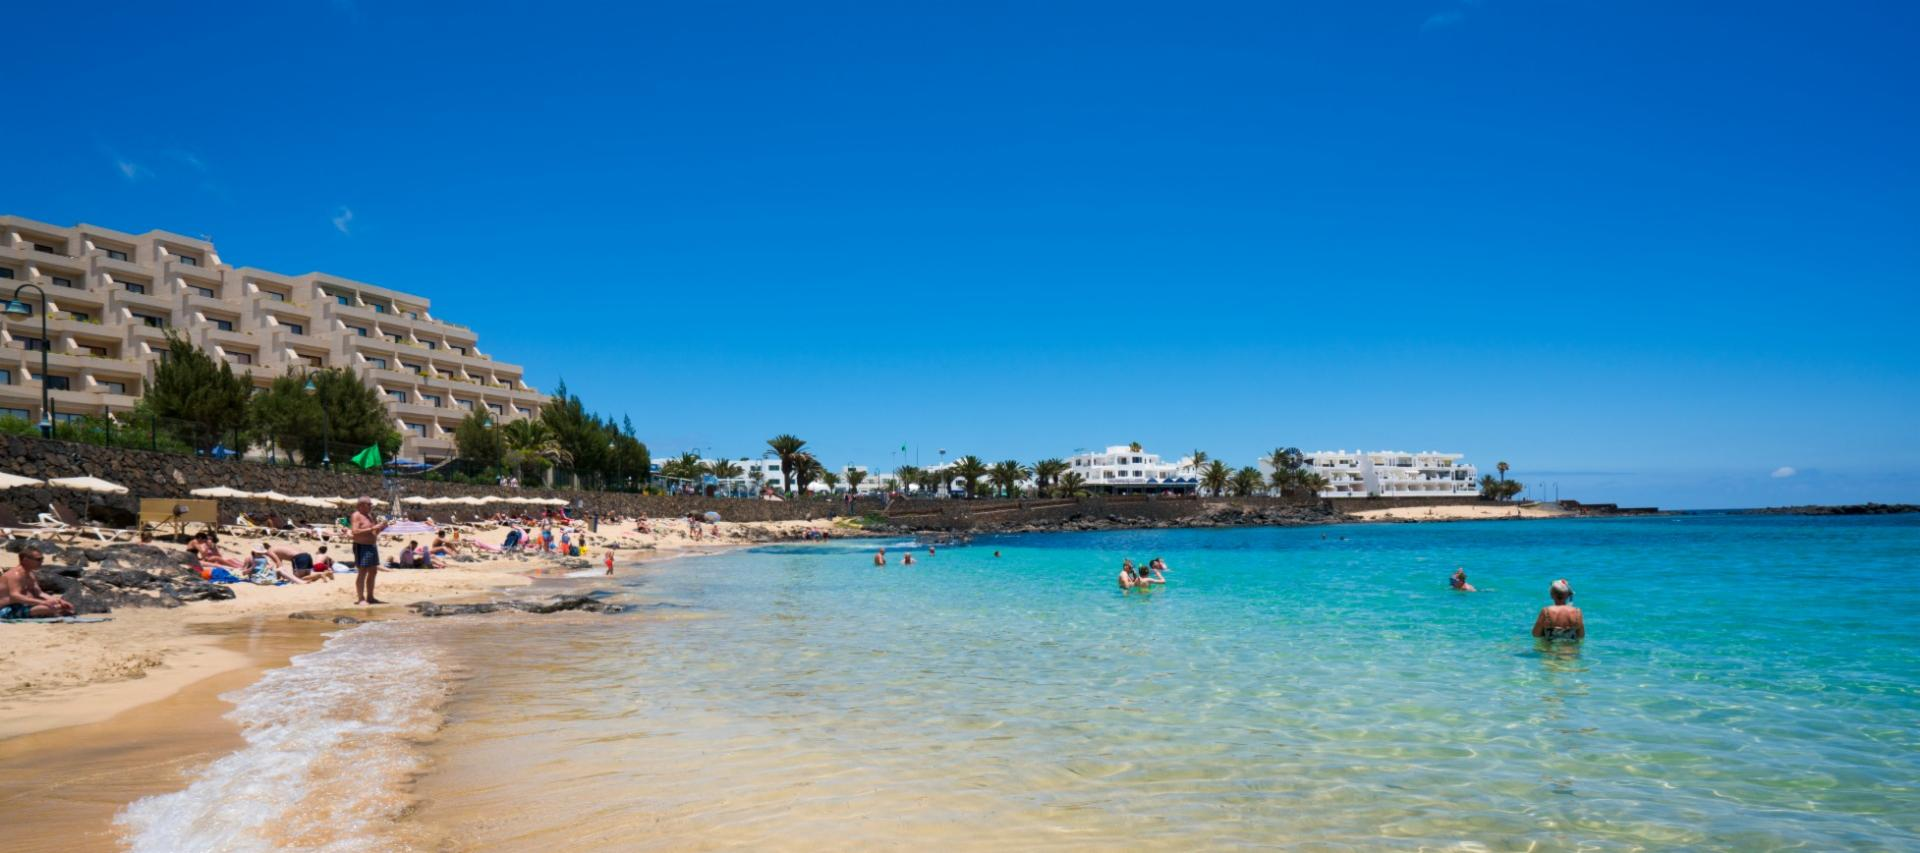 Beach in Costa Teguise in Lanzarote